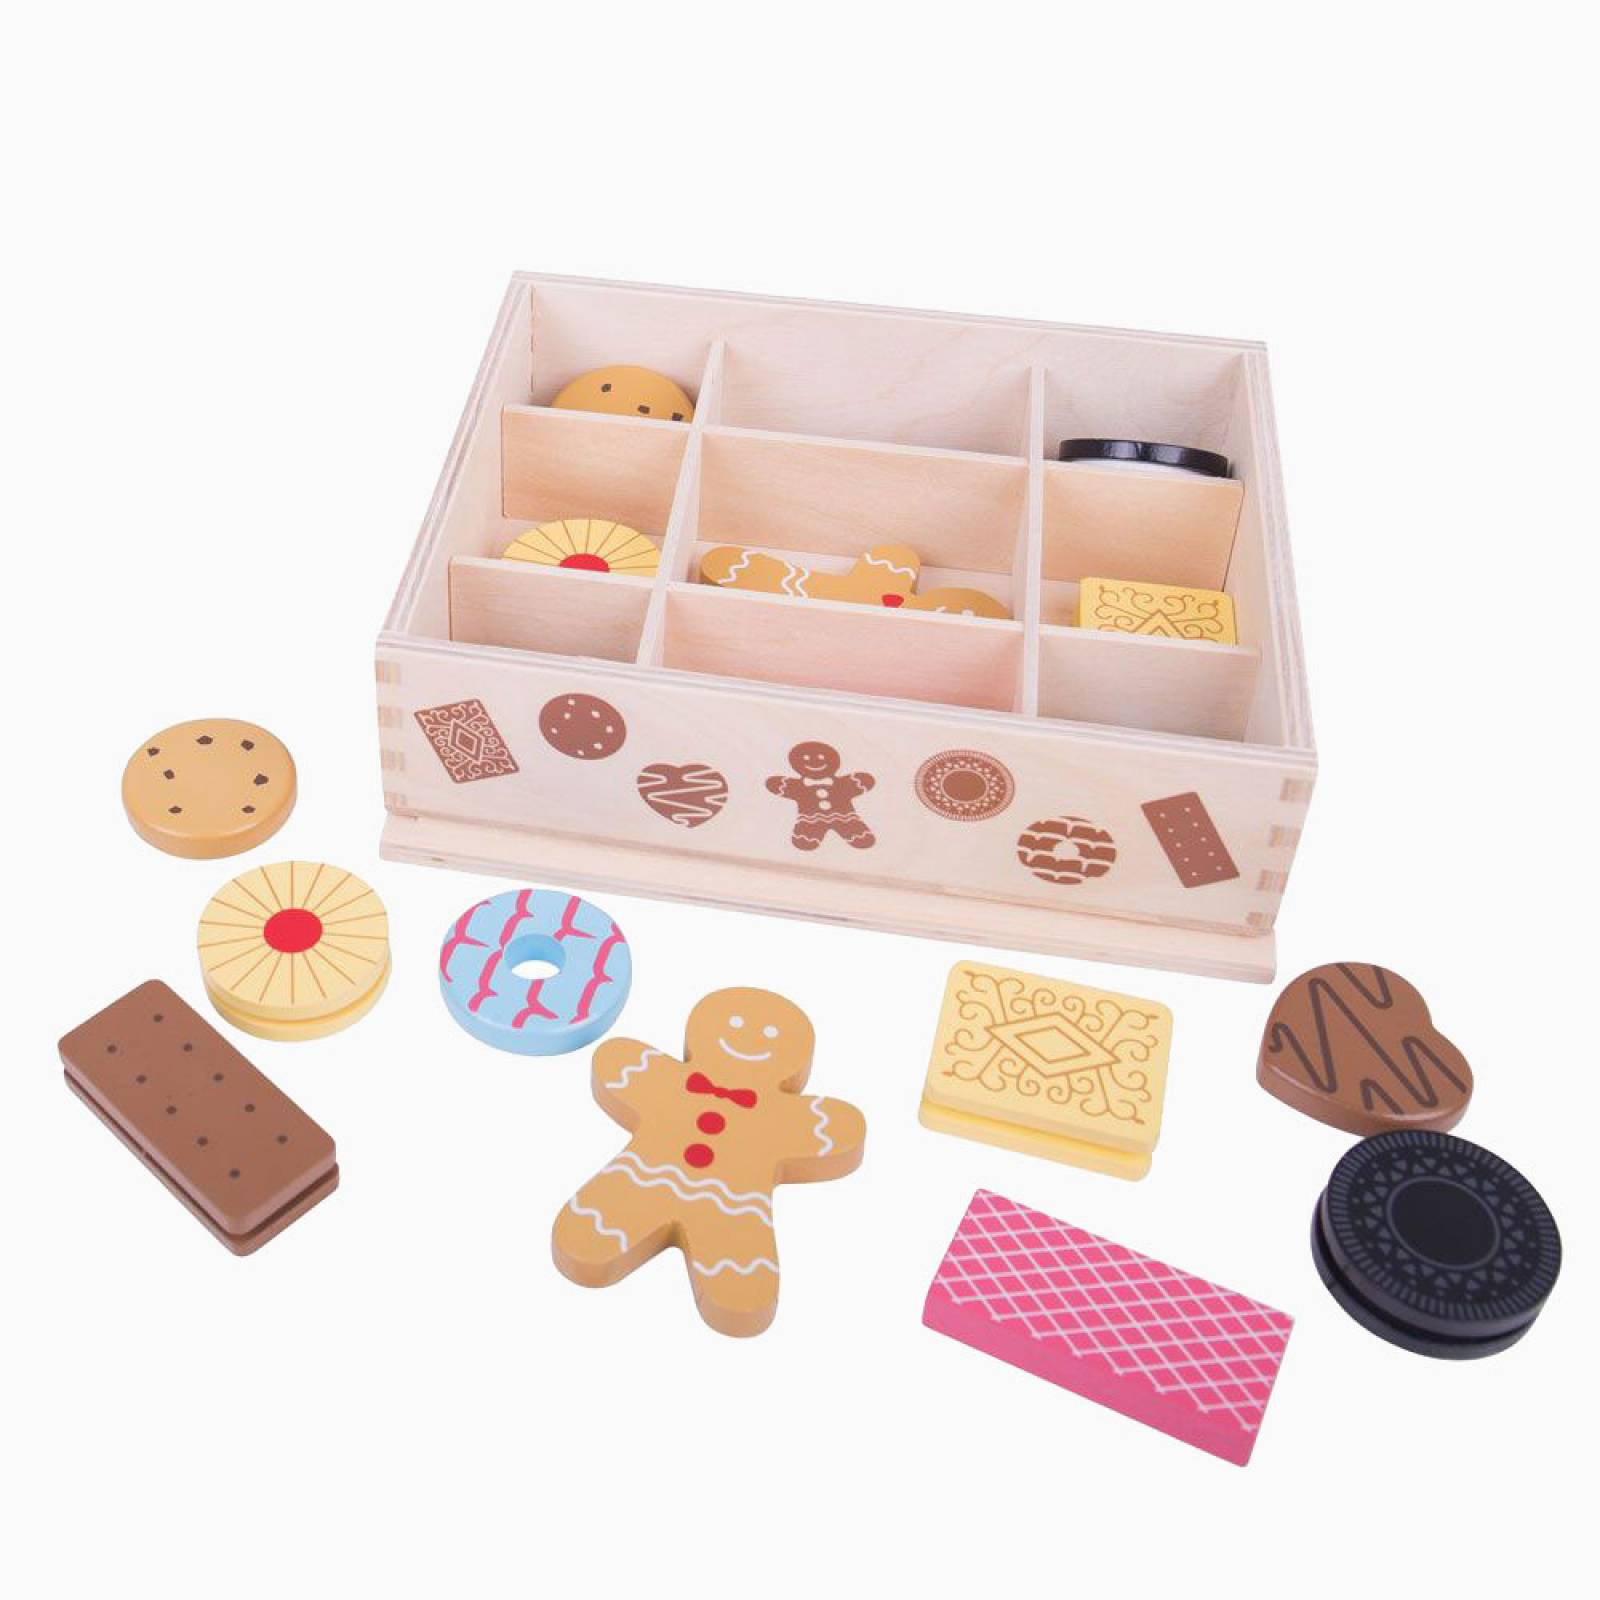 Wooden Box Of Play Biscuits 3+